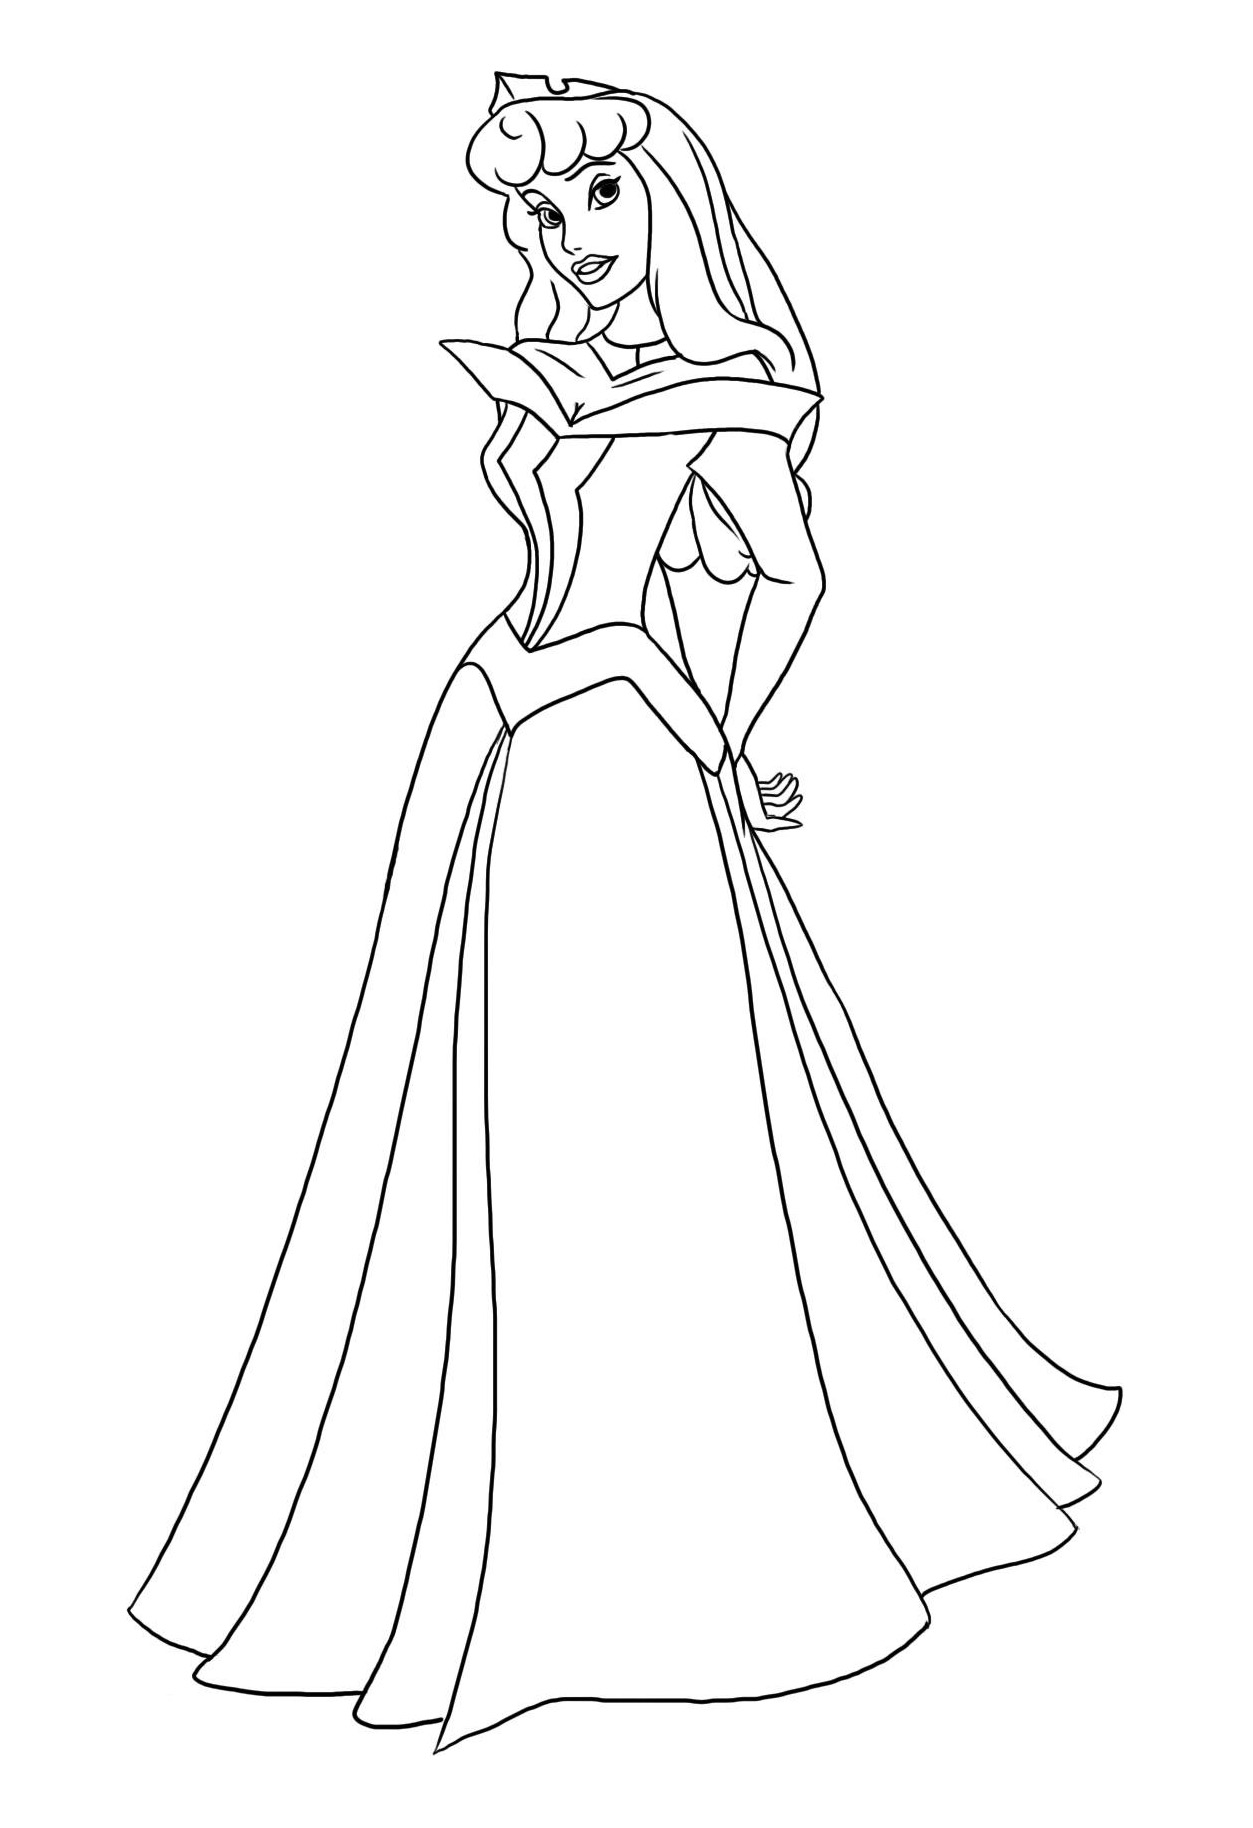 sleeping beauty coloring pages sleeping beauty coloring pages download and print coloring beauty sleeping pages